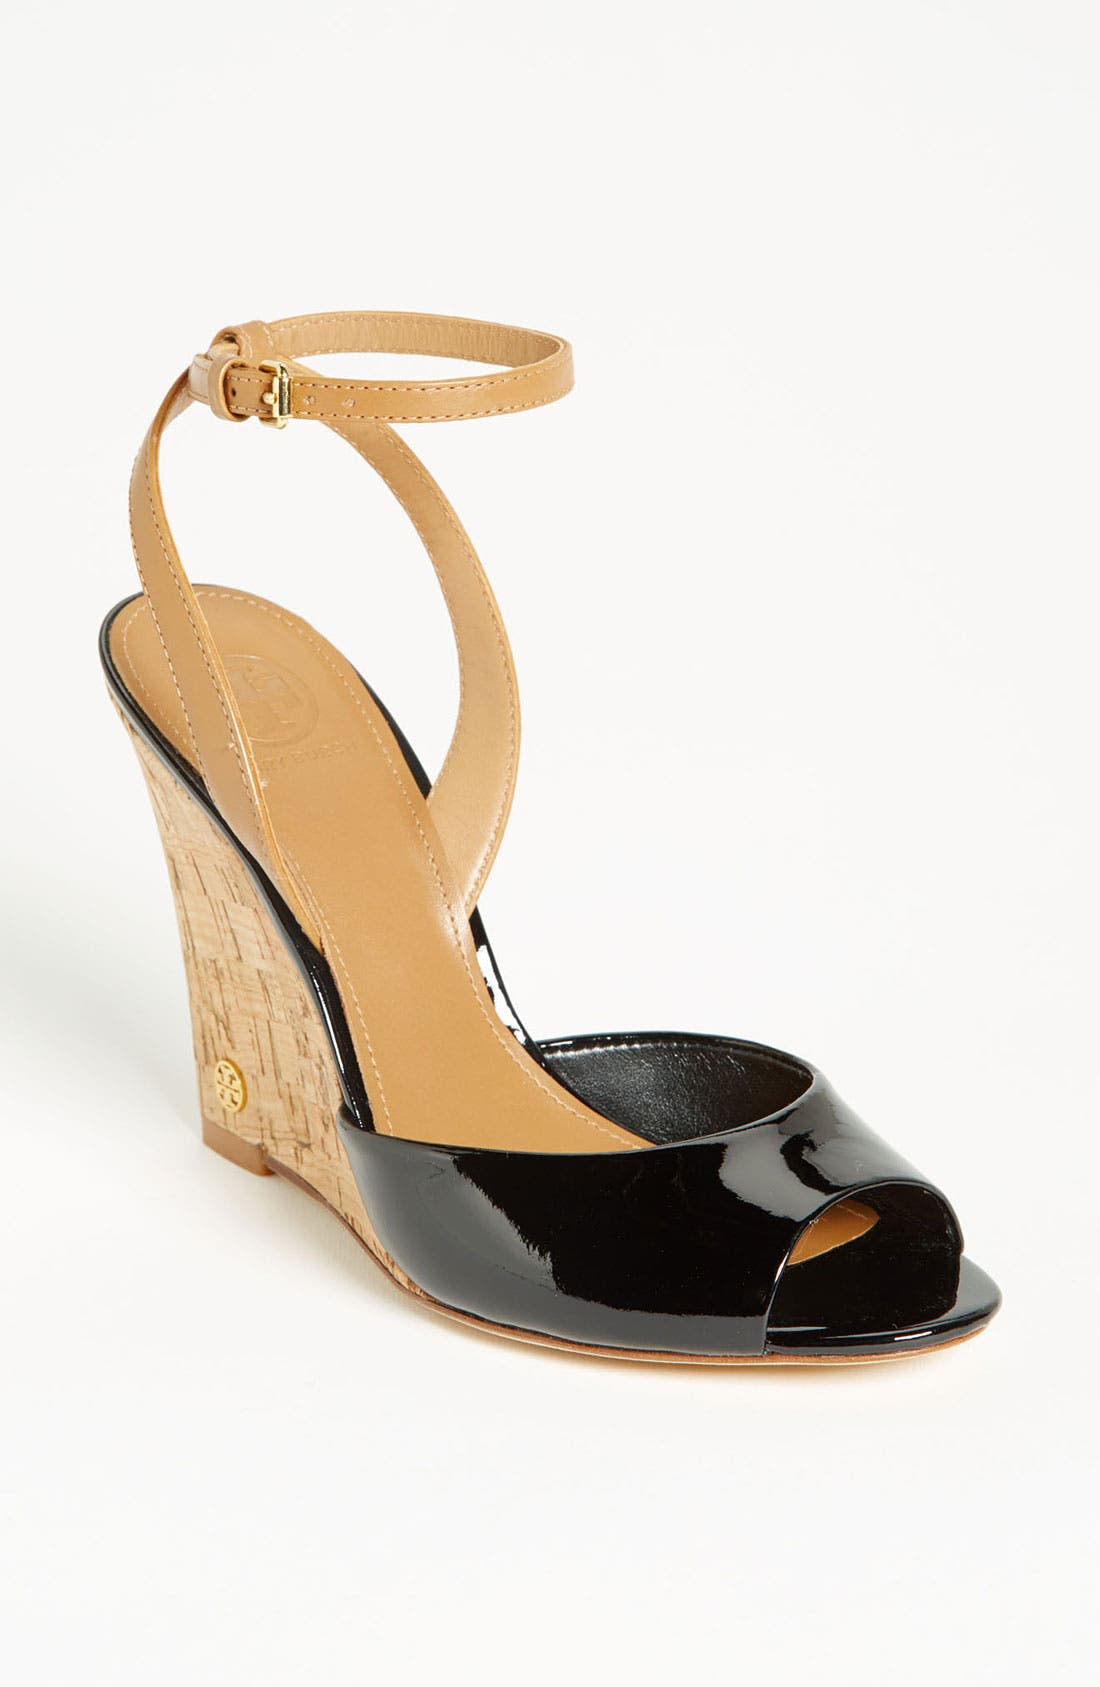 Main Image - Tory Burch 'Ashton' Sandal